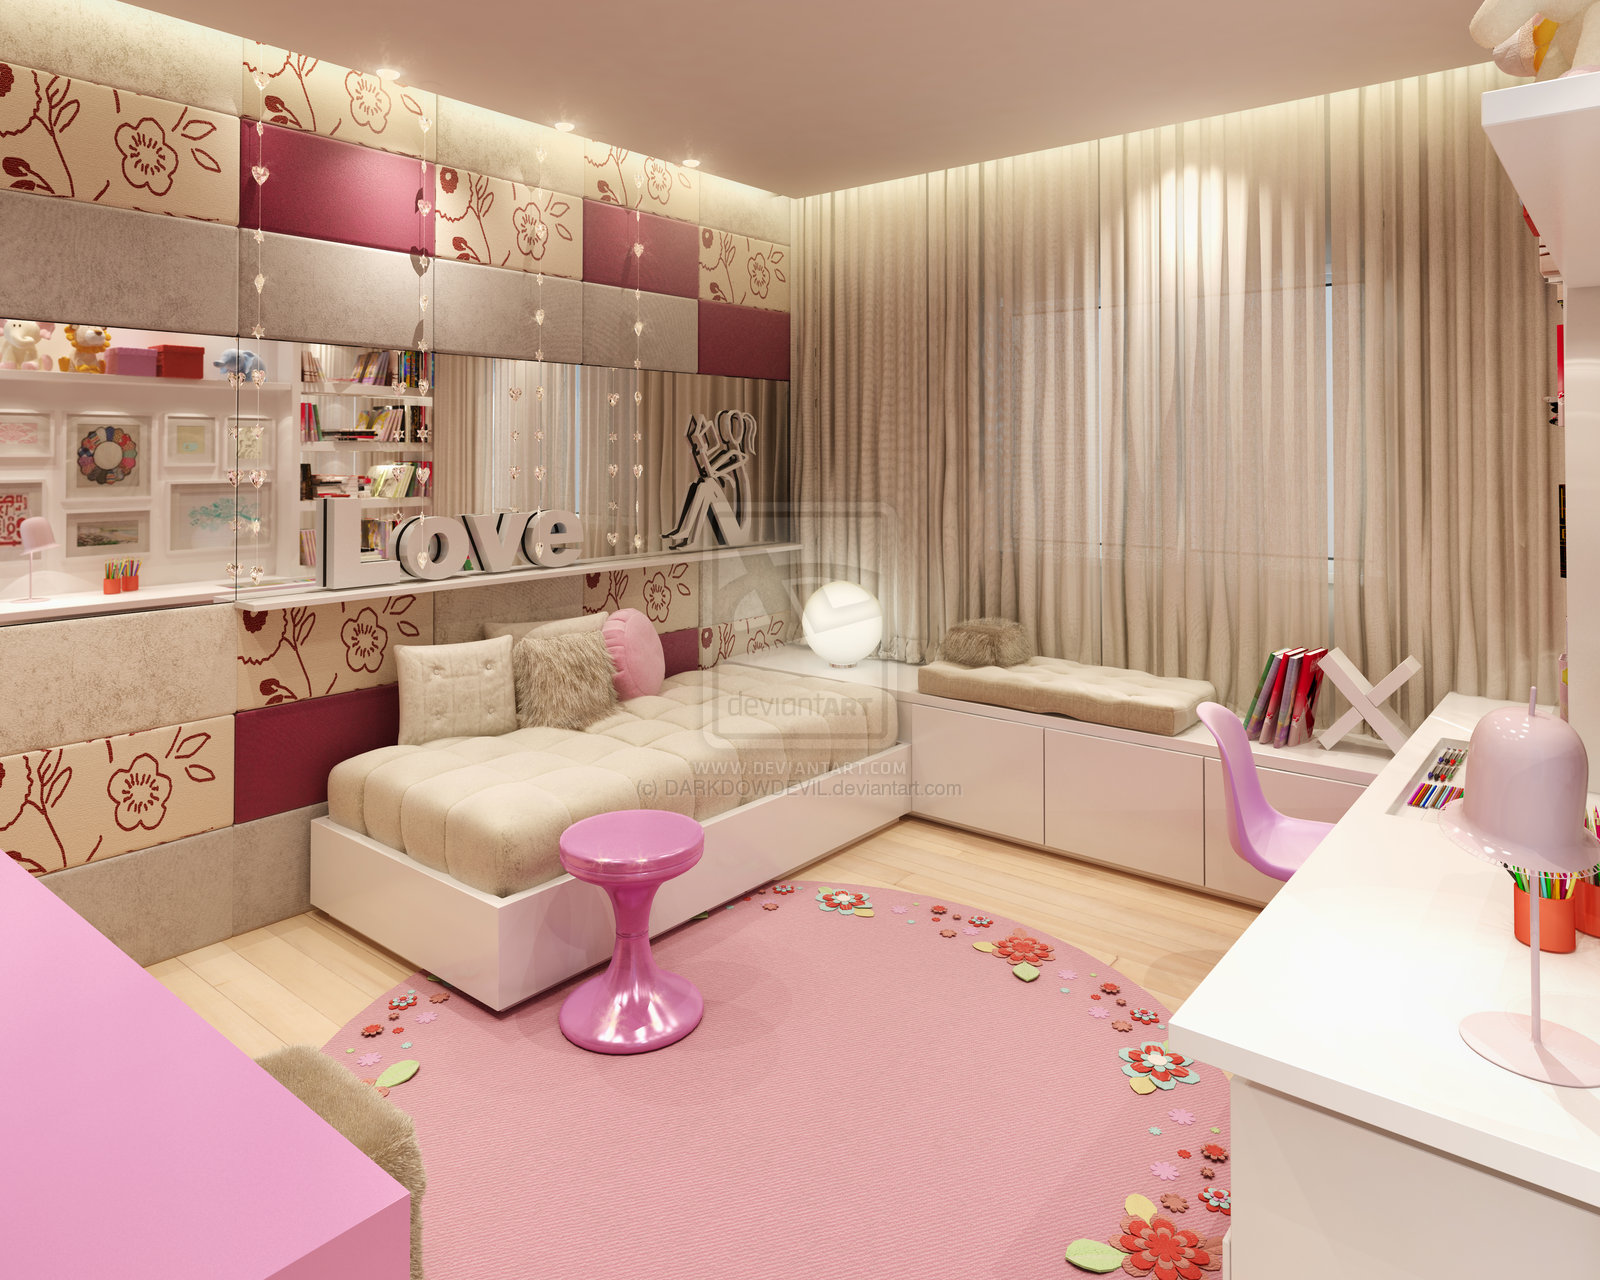 Girly bedroom design ideas wonderful for Bedroom ideas for girls